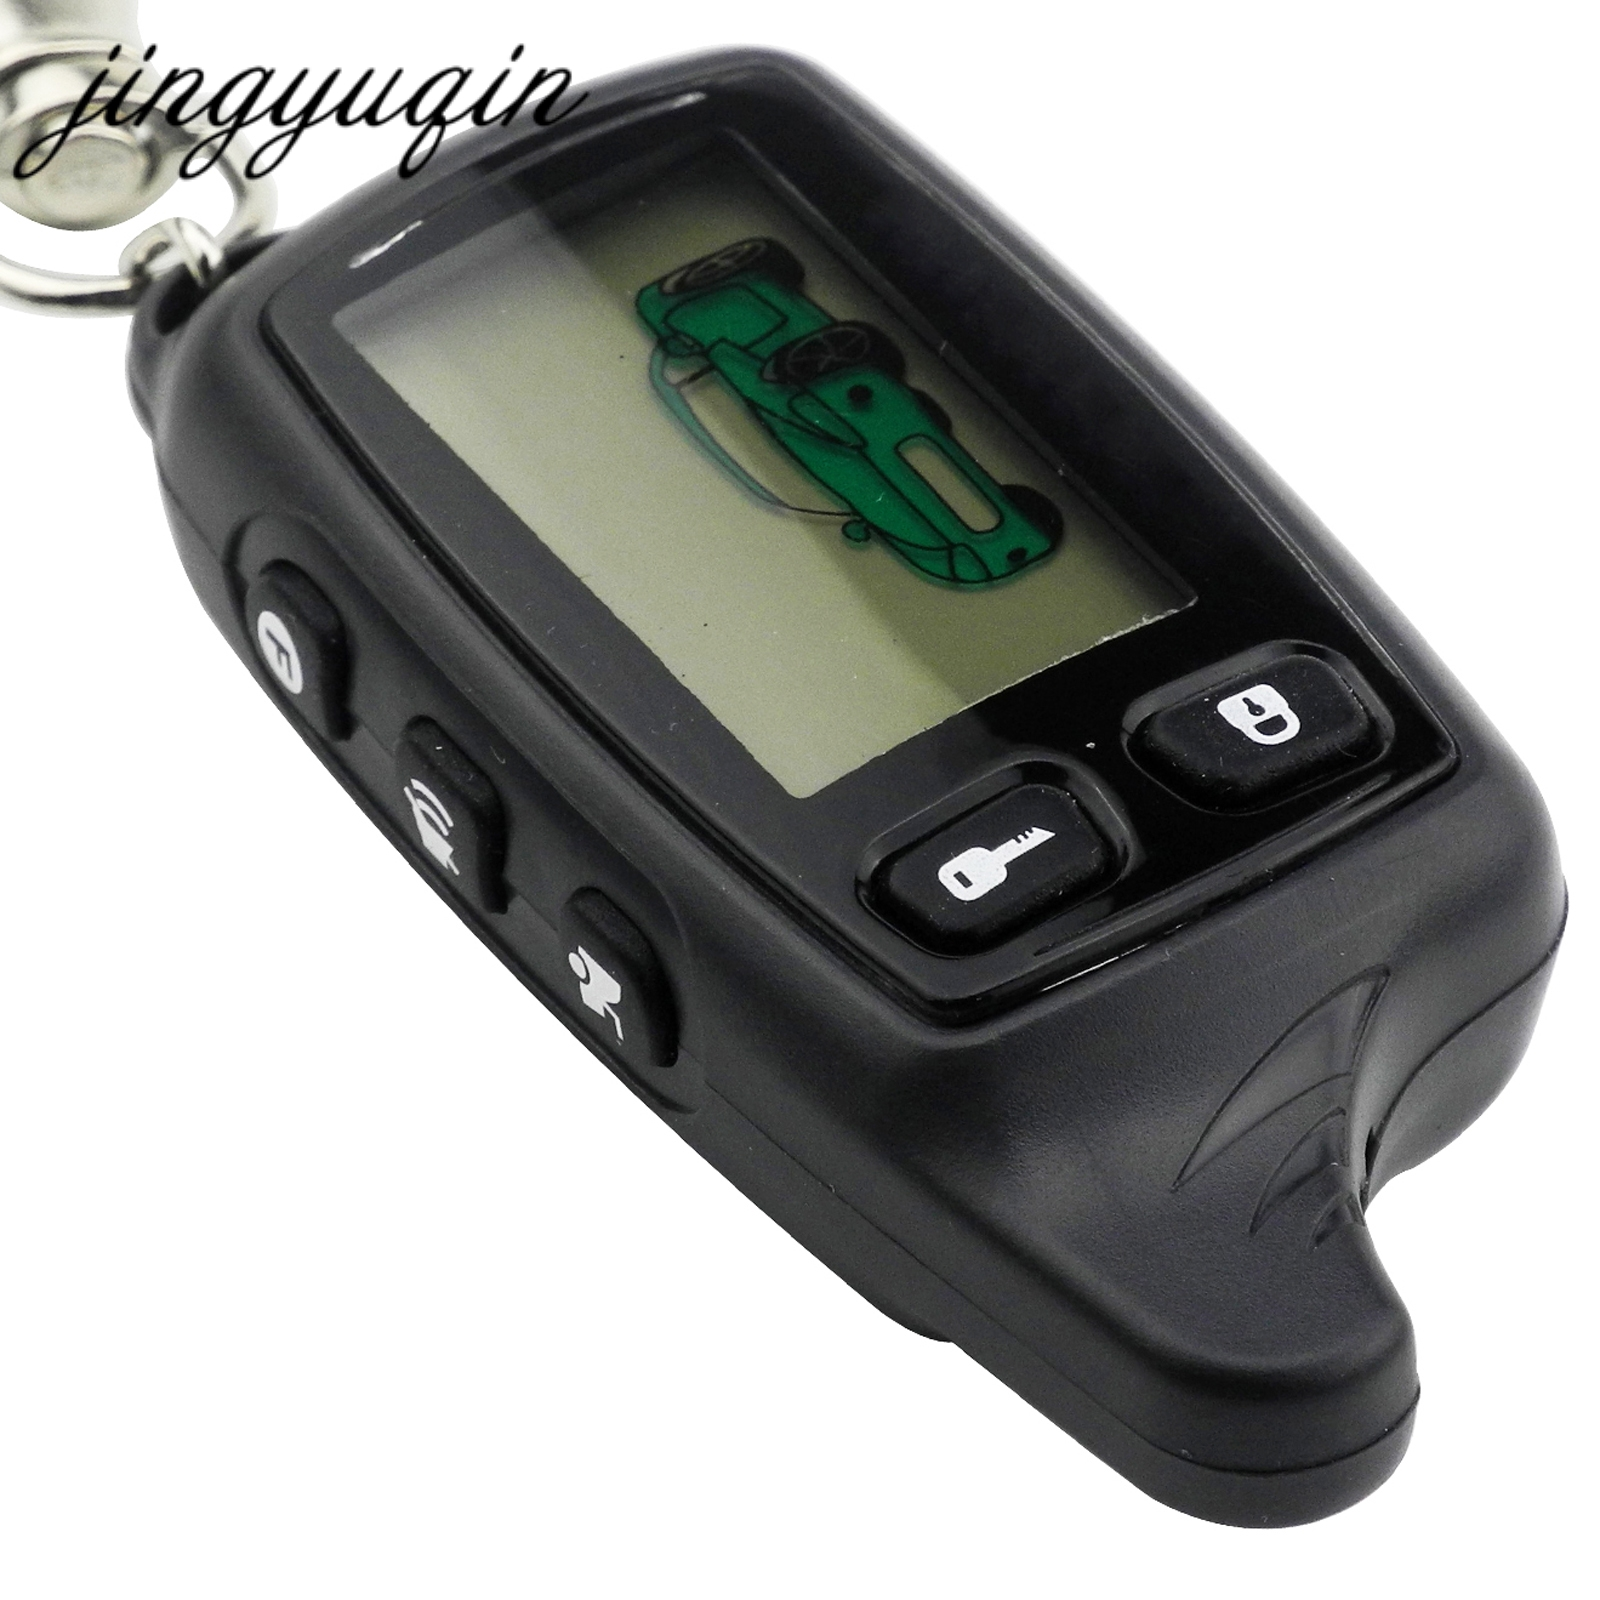 jingyuqin Russian 9010 LCD Remote Controller For Tomahawk TW9010 Two Way Car Alarm System keychain Fob